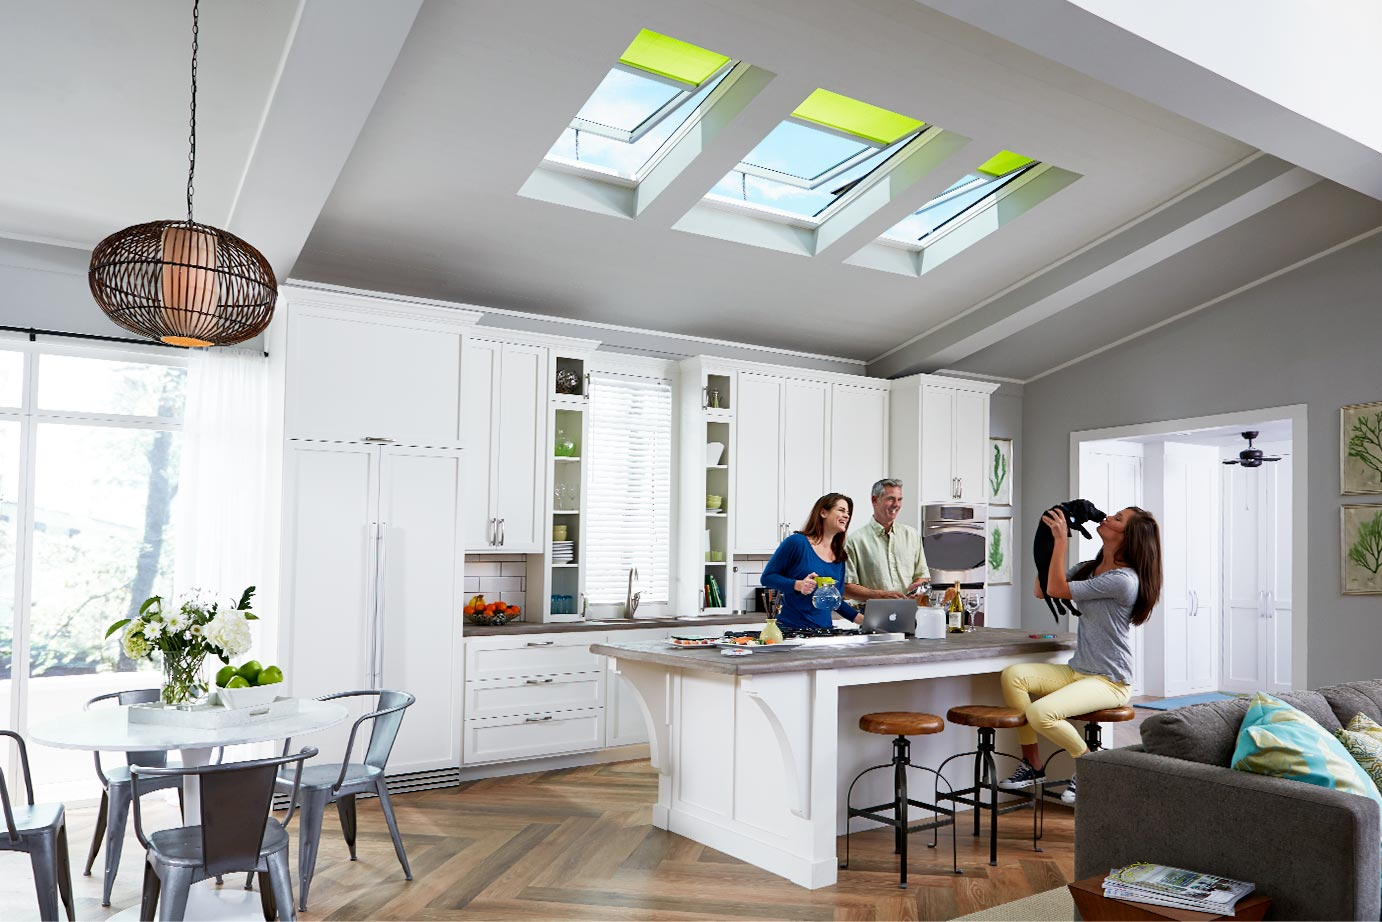 kitchen green blinds?h=922&la=en&w=1382&cc=grid_12&key=145917965341898&sw=960 velux frequently asked questions velux klf 100 wiring diagram at cos-gaming.co